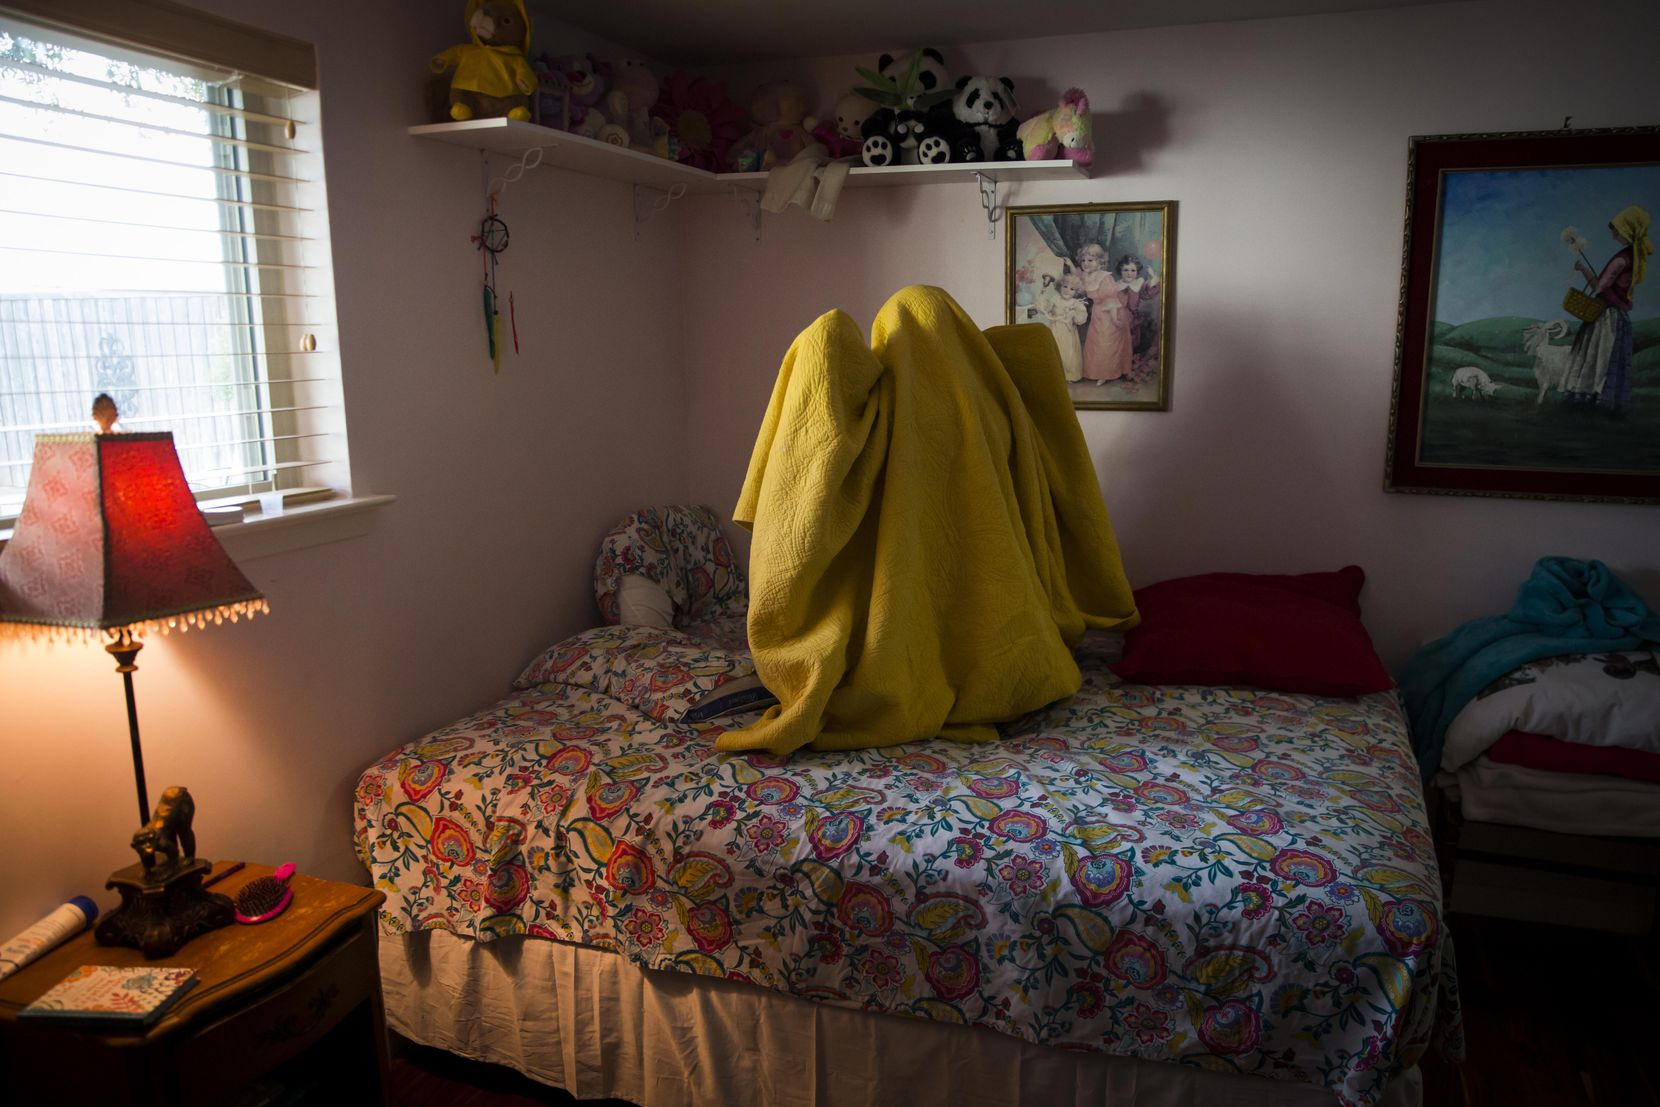 Kara Zartler wraps herself in her blanket, kneeling on her bed and rocking forward and back, one of her usual calming mechanisms, after getting home from school. (Smiley N. Pool/The Dallas Morning News)